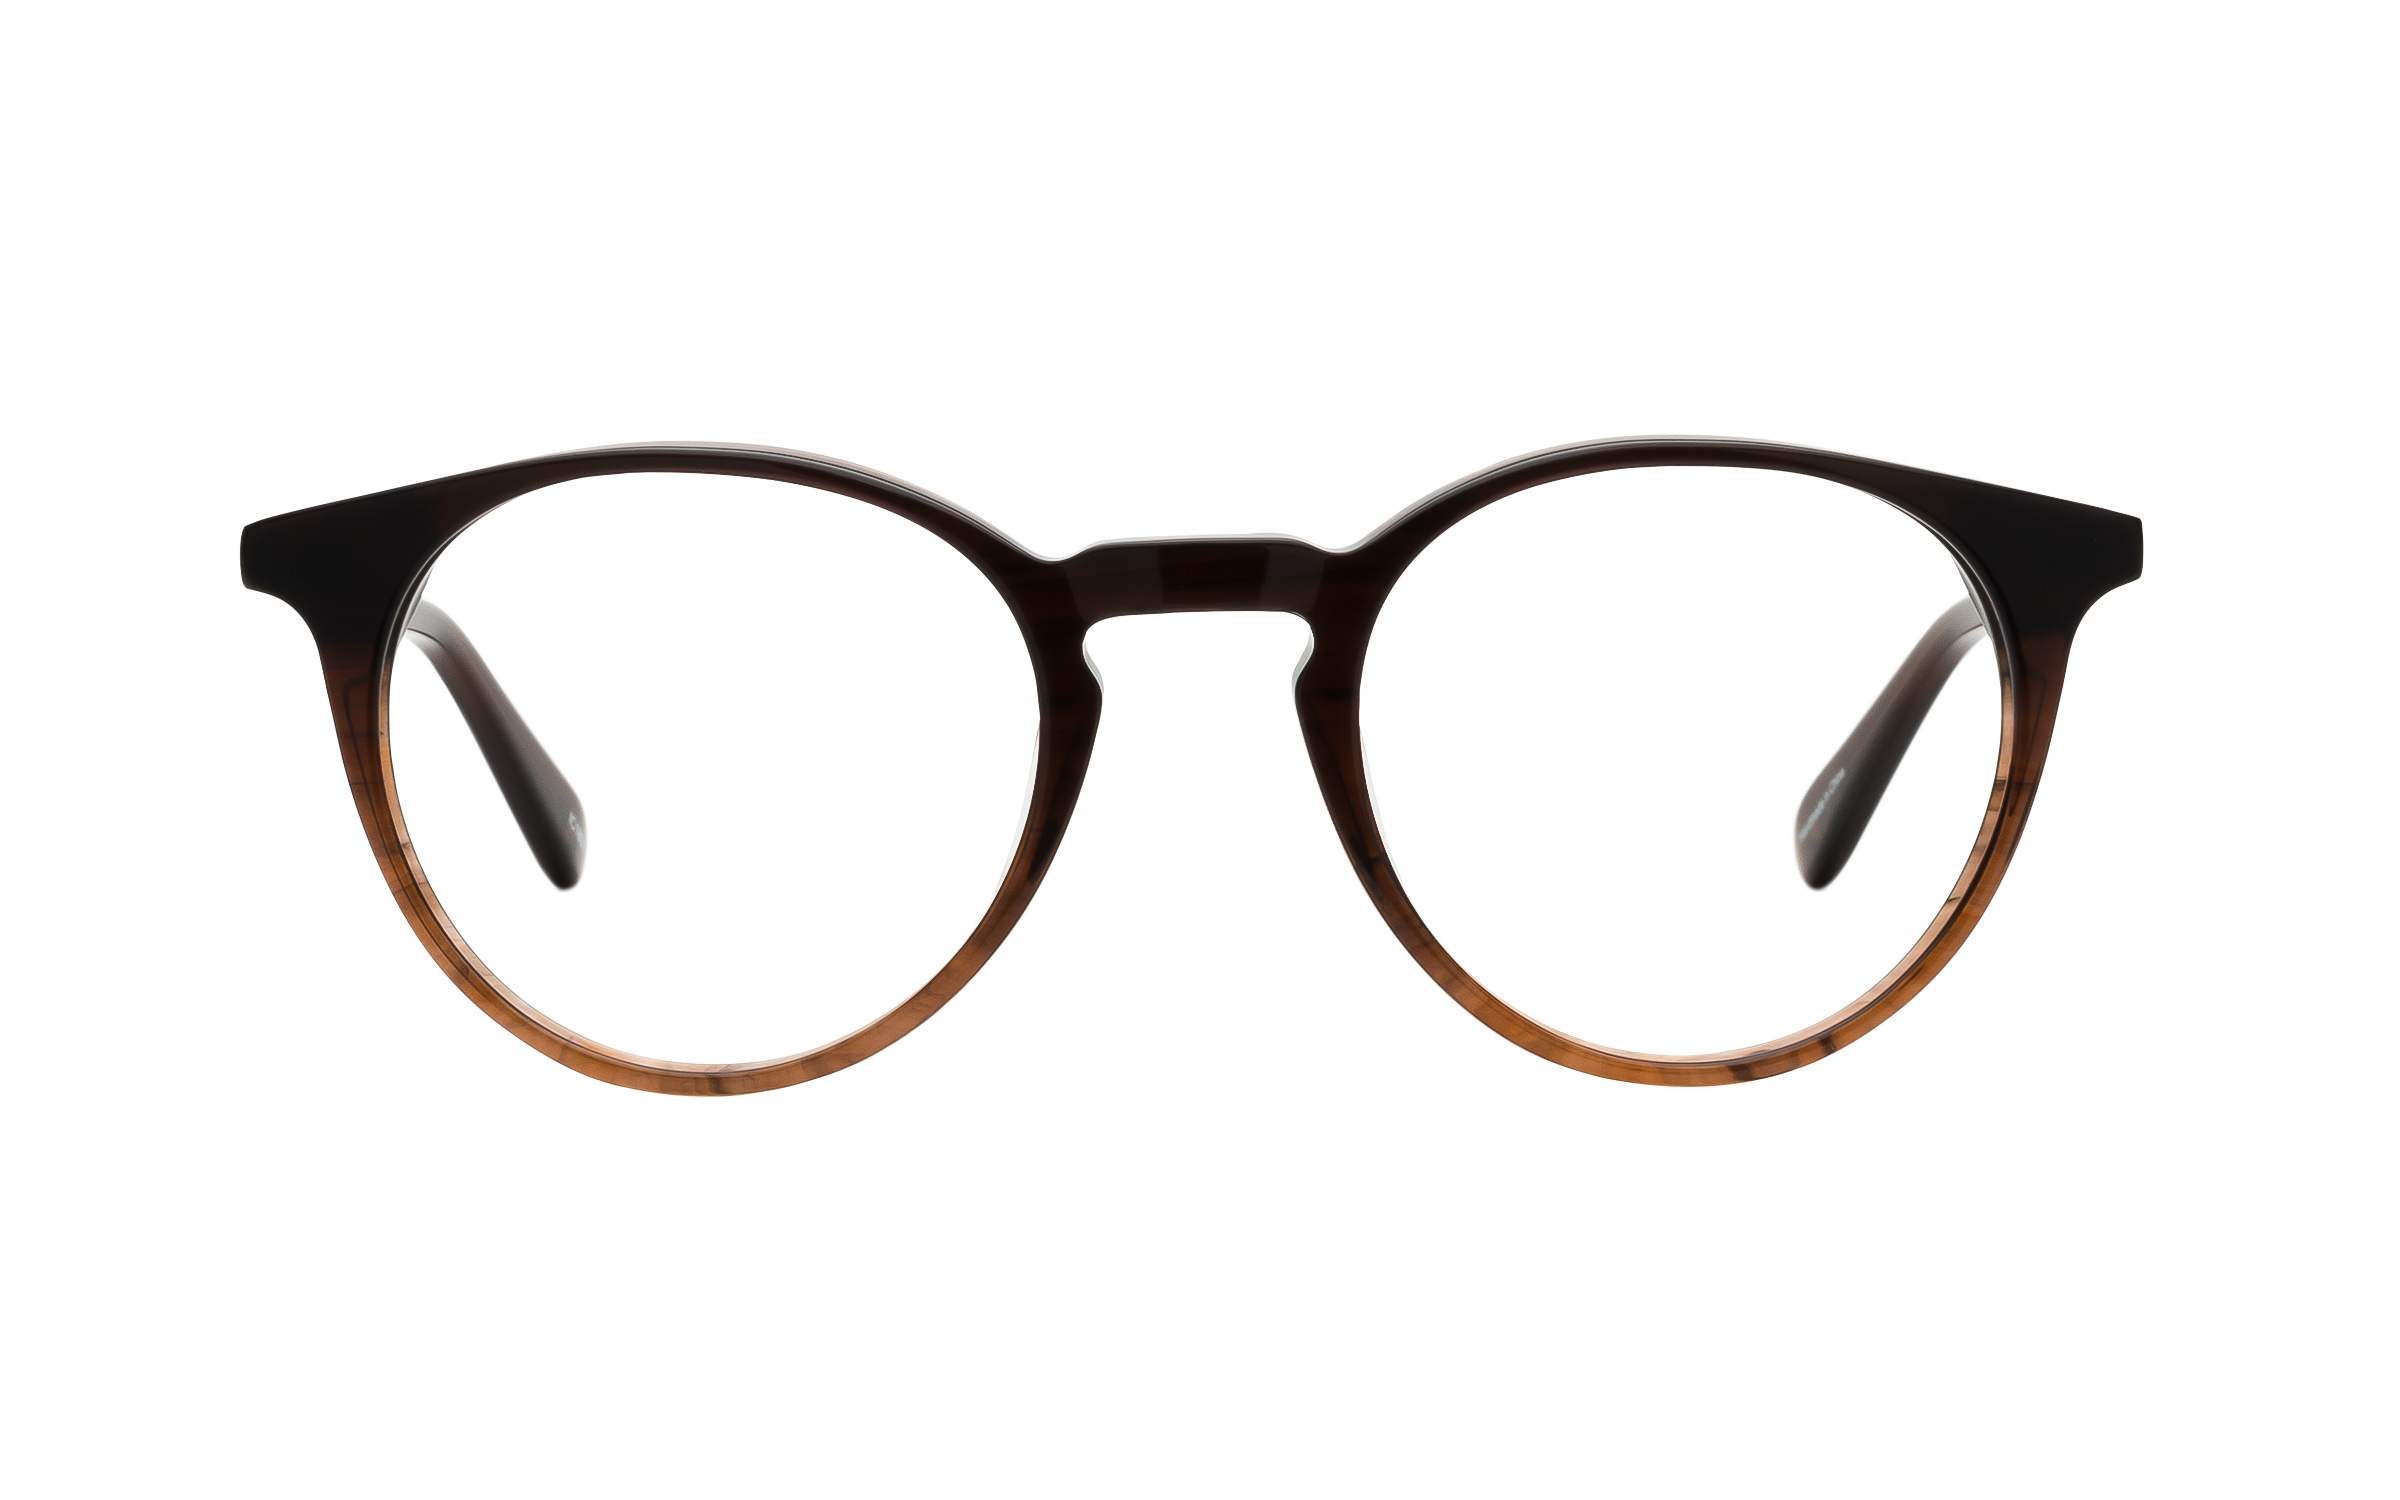 Main and Central West Sioux Eyeglasses and Frame in Mahogany Brown - Online Coastal